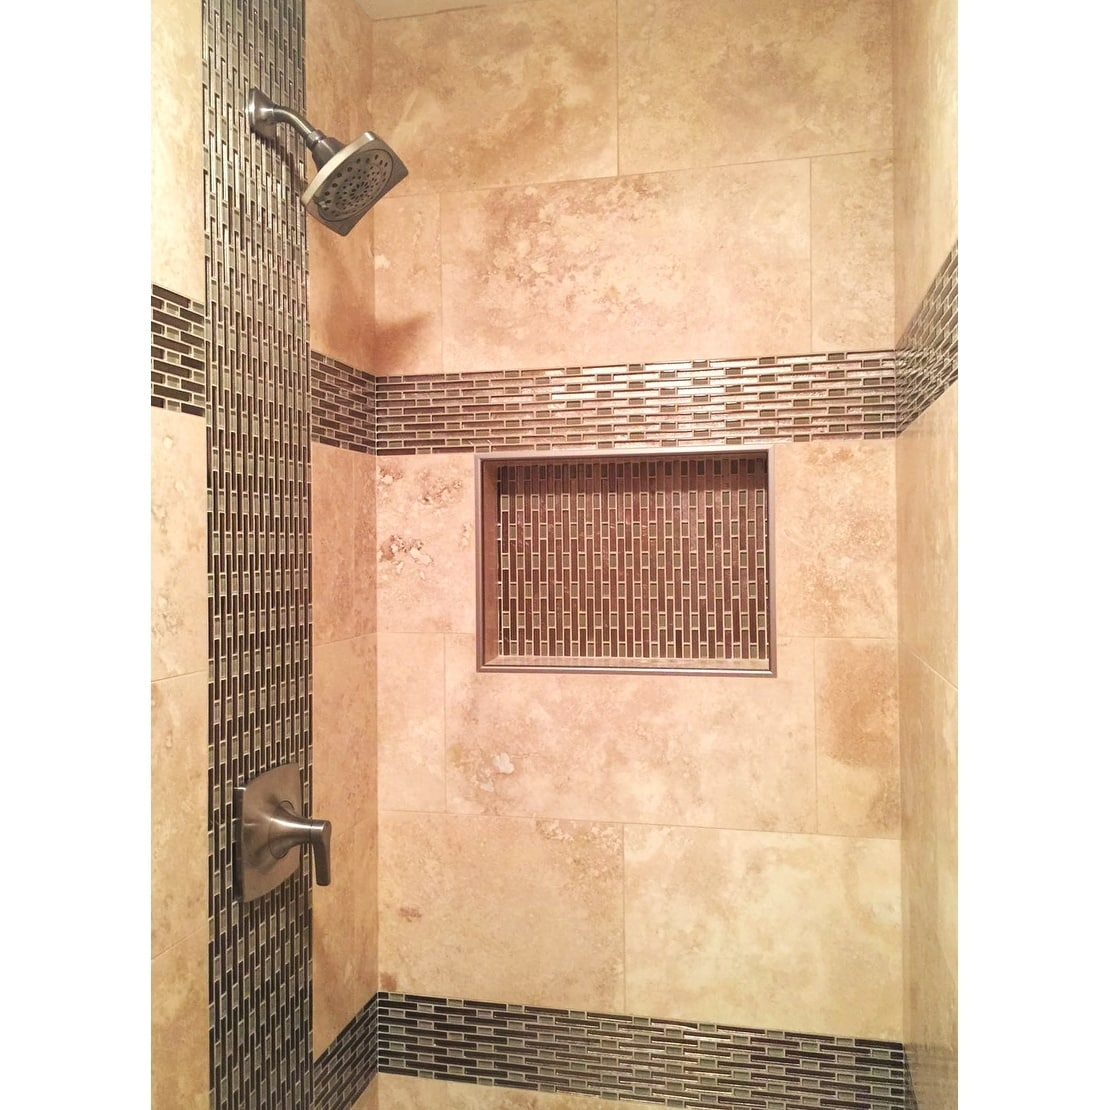 """Ready to Tile Leak Proof 17/"""" x 17/"""" Square Bathroom Recessed Shower Niche Shelf"""